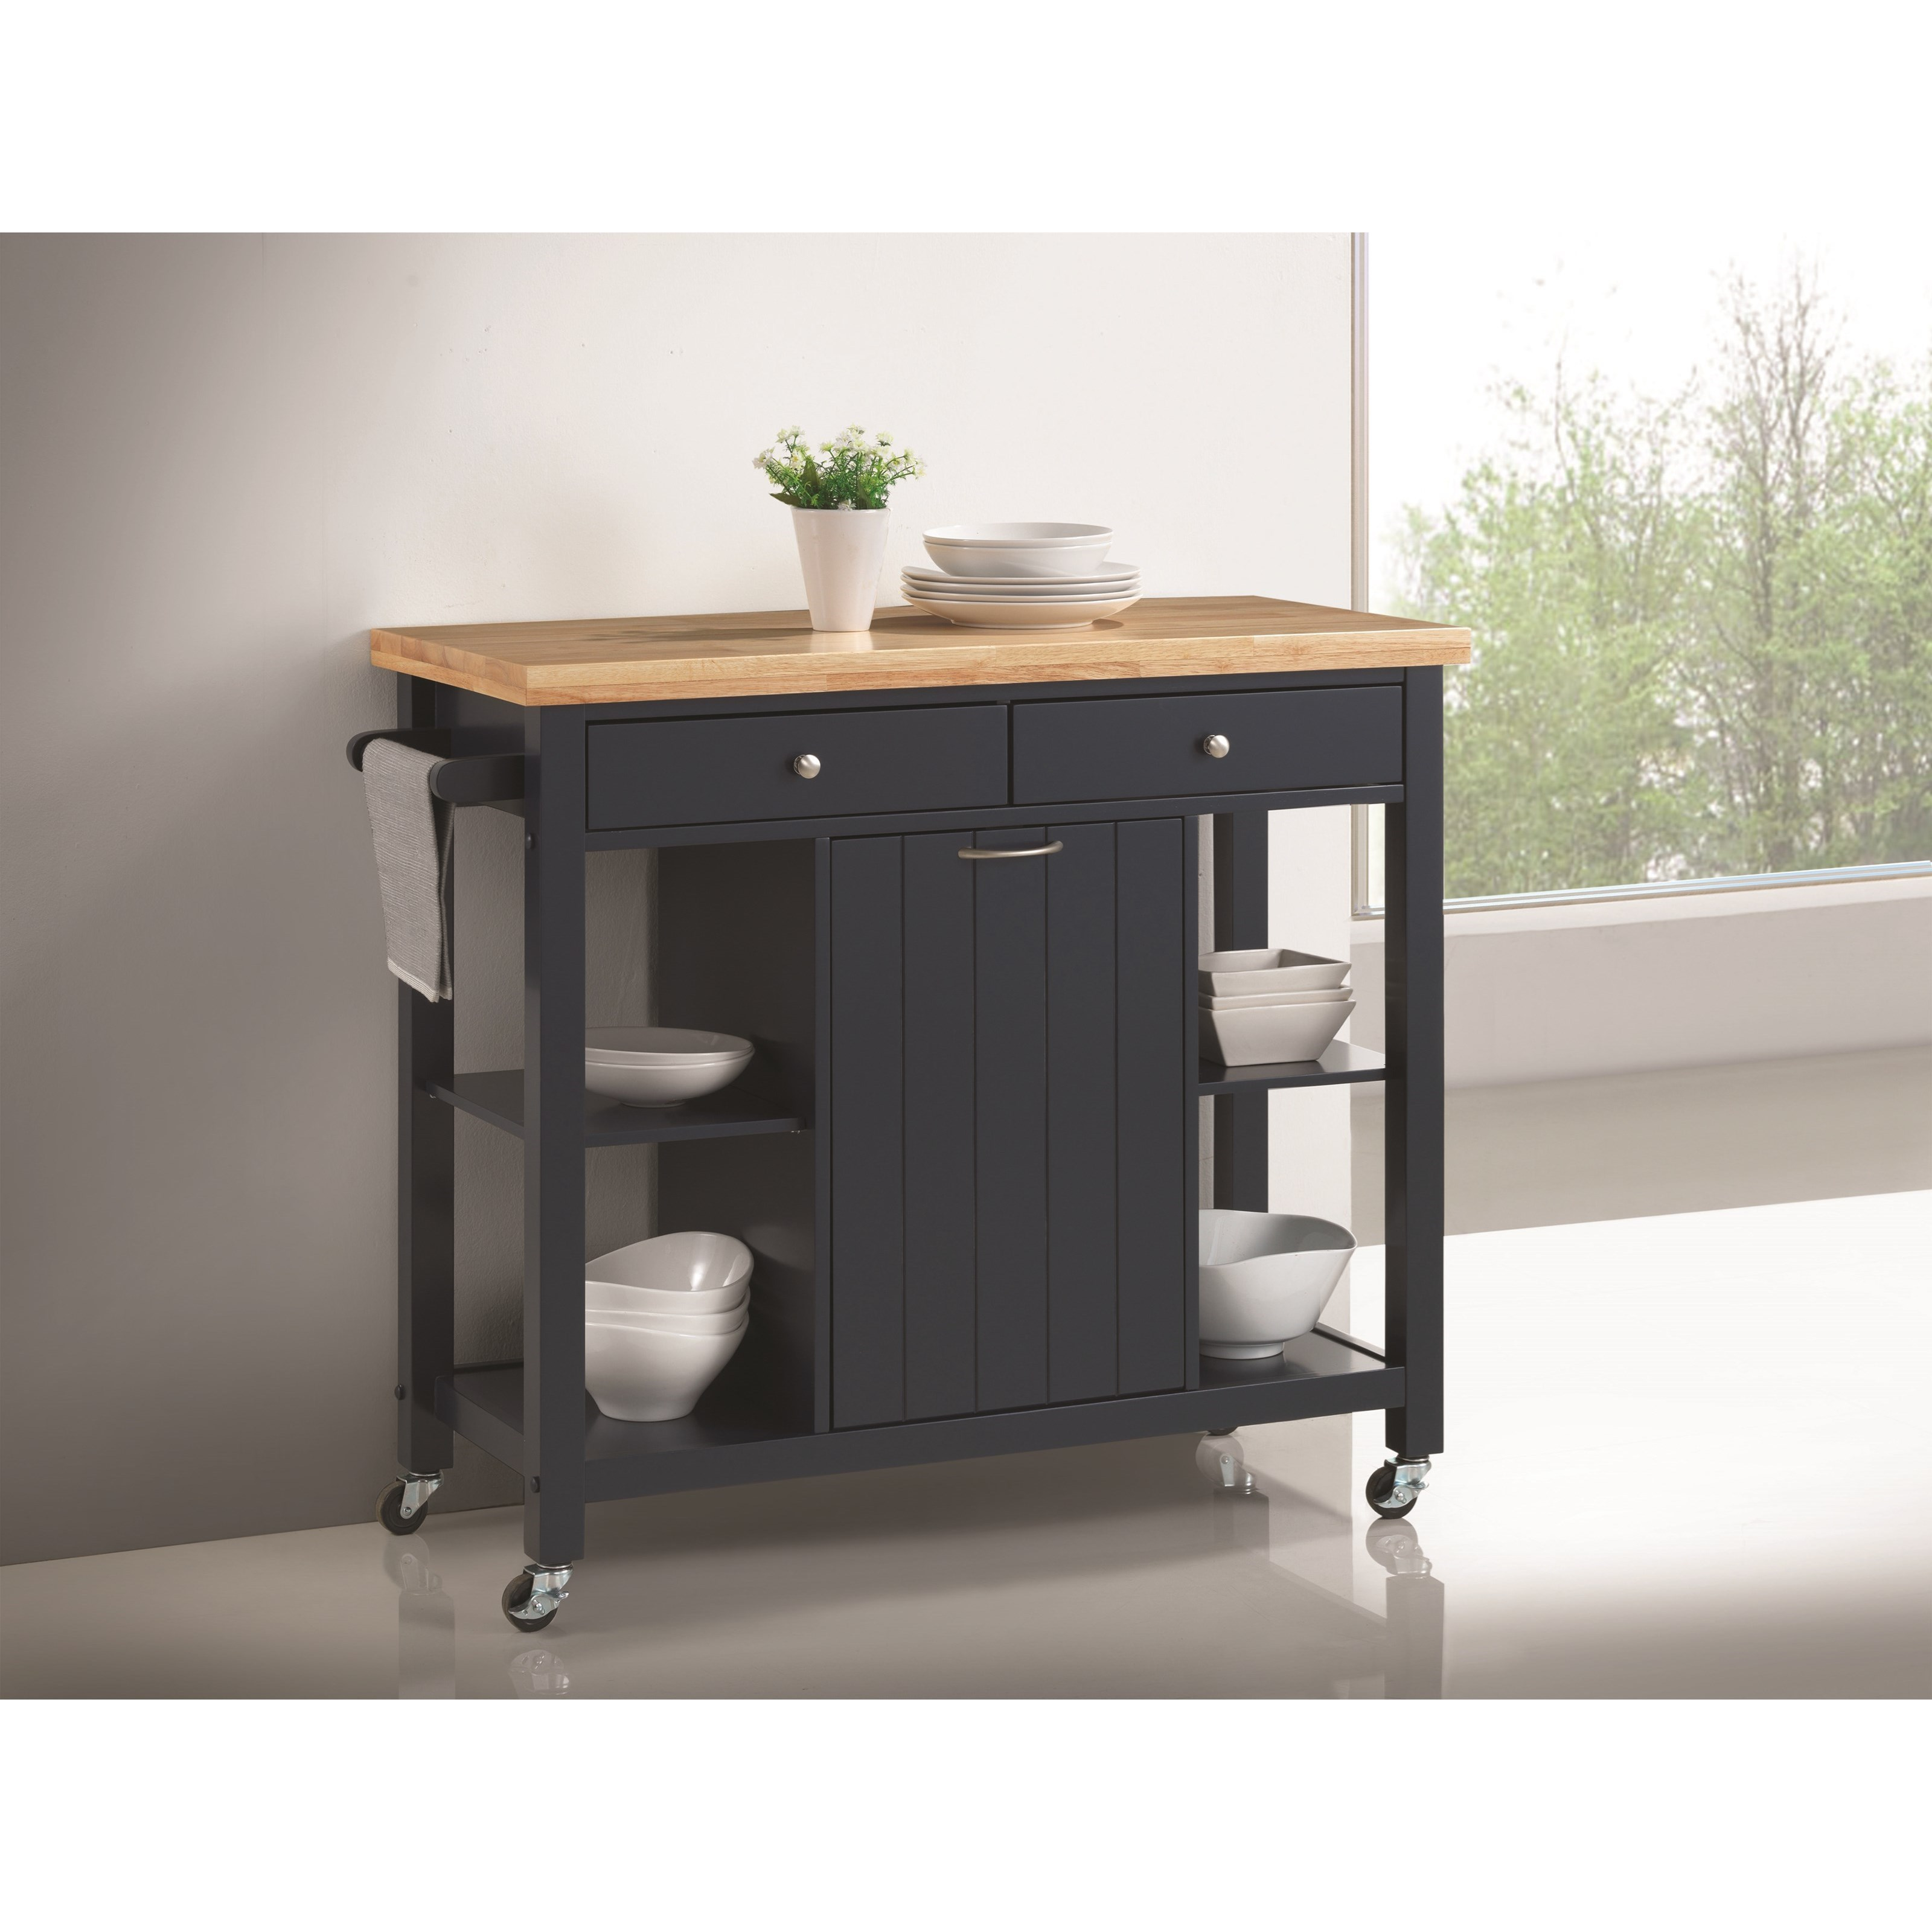 Coaster Kitchen Carts Kitchen Island - Item Number: 102675